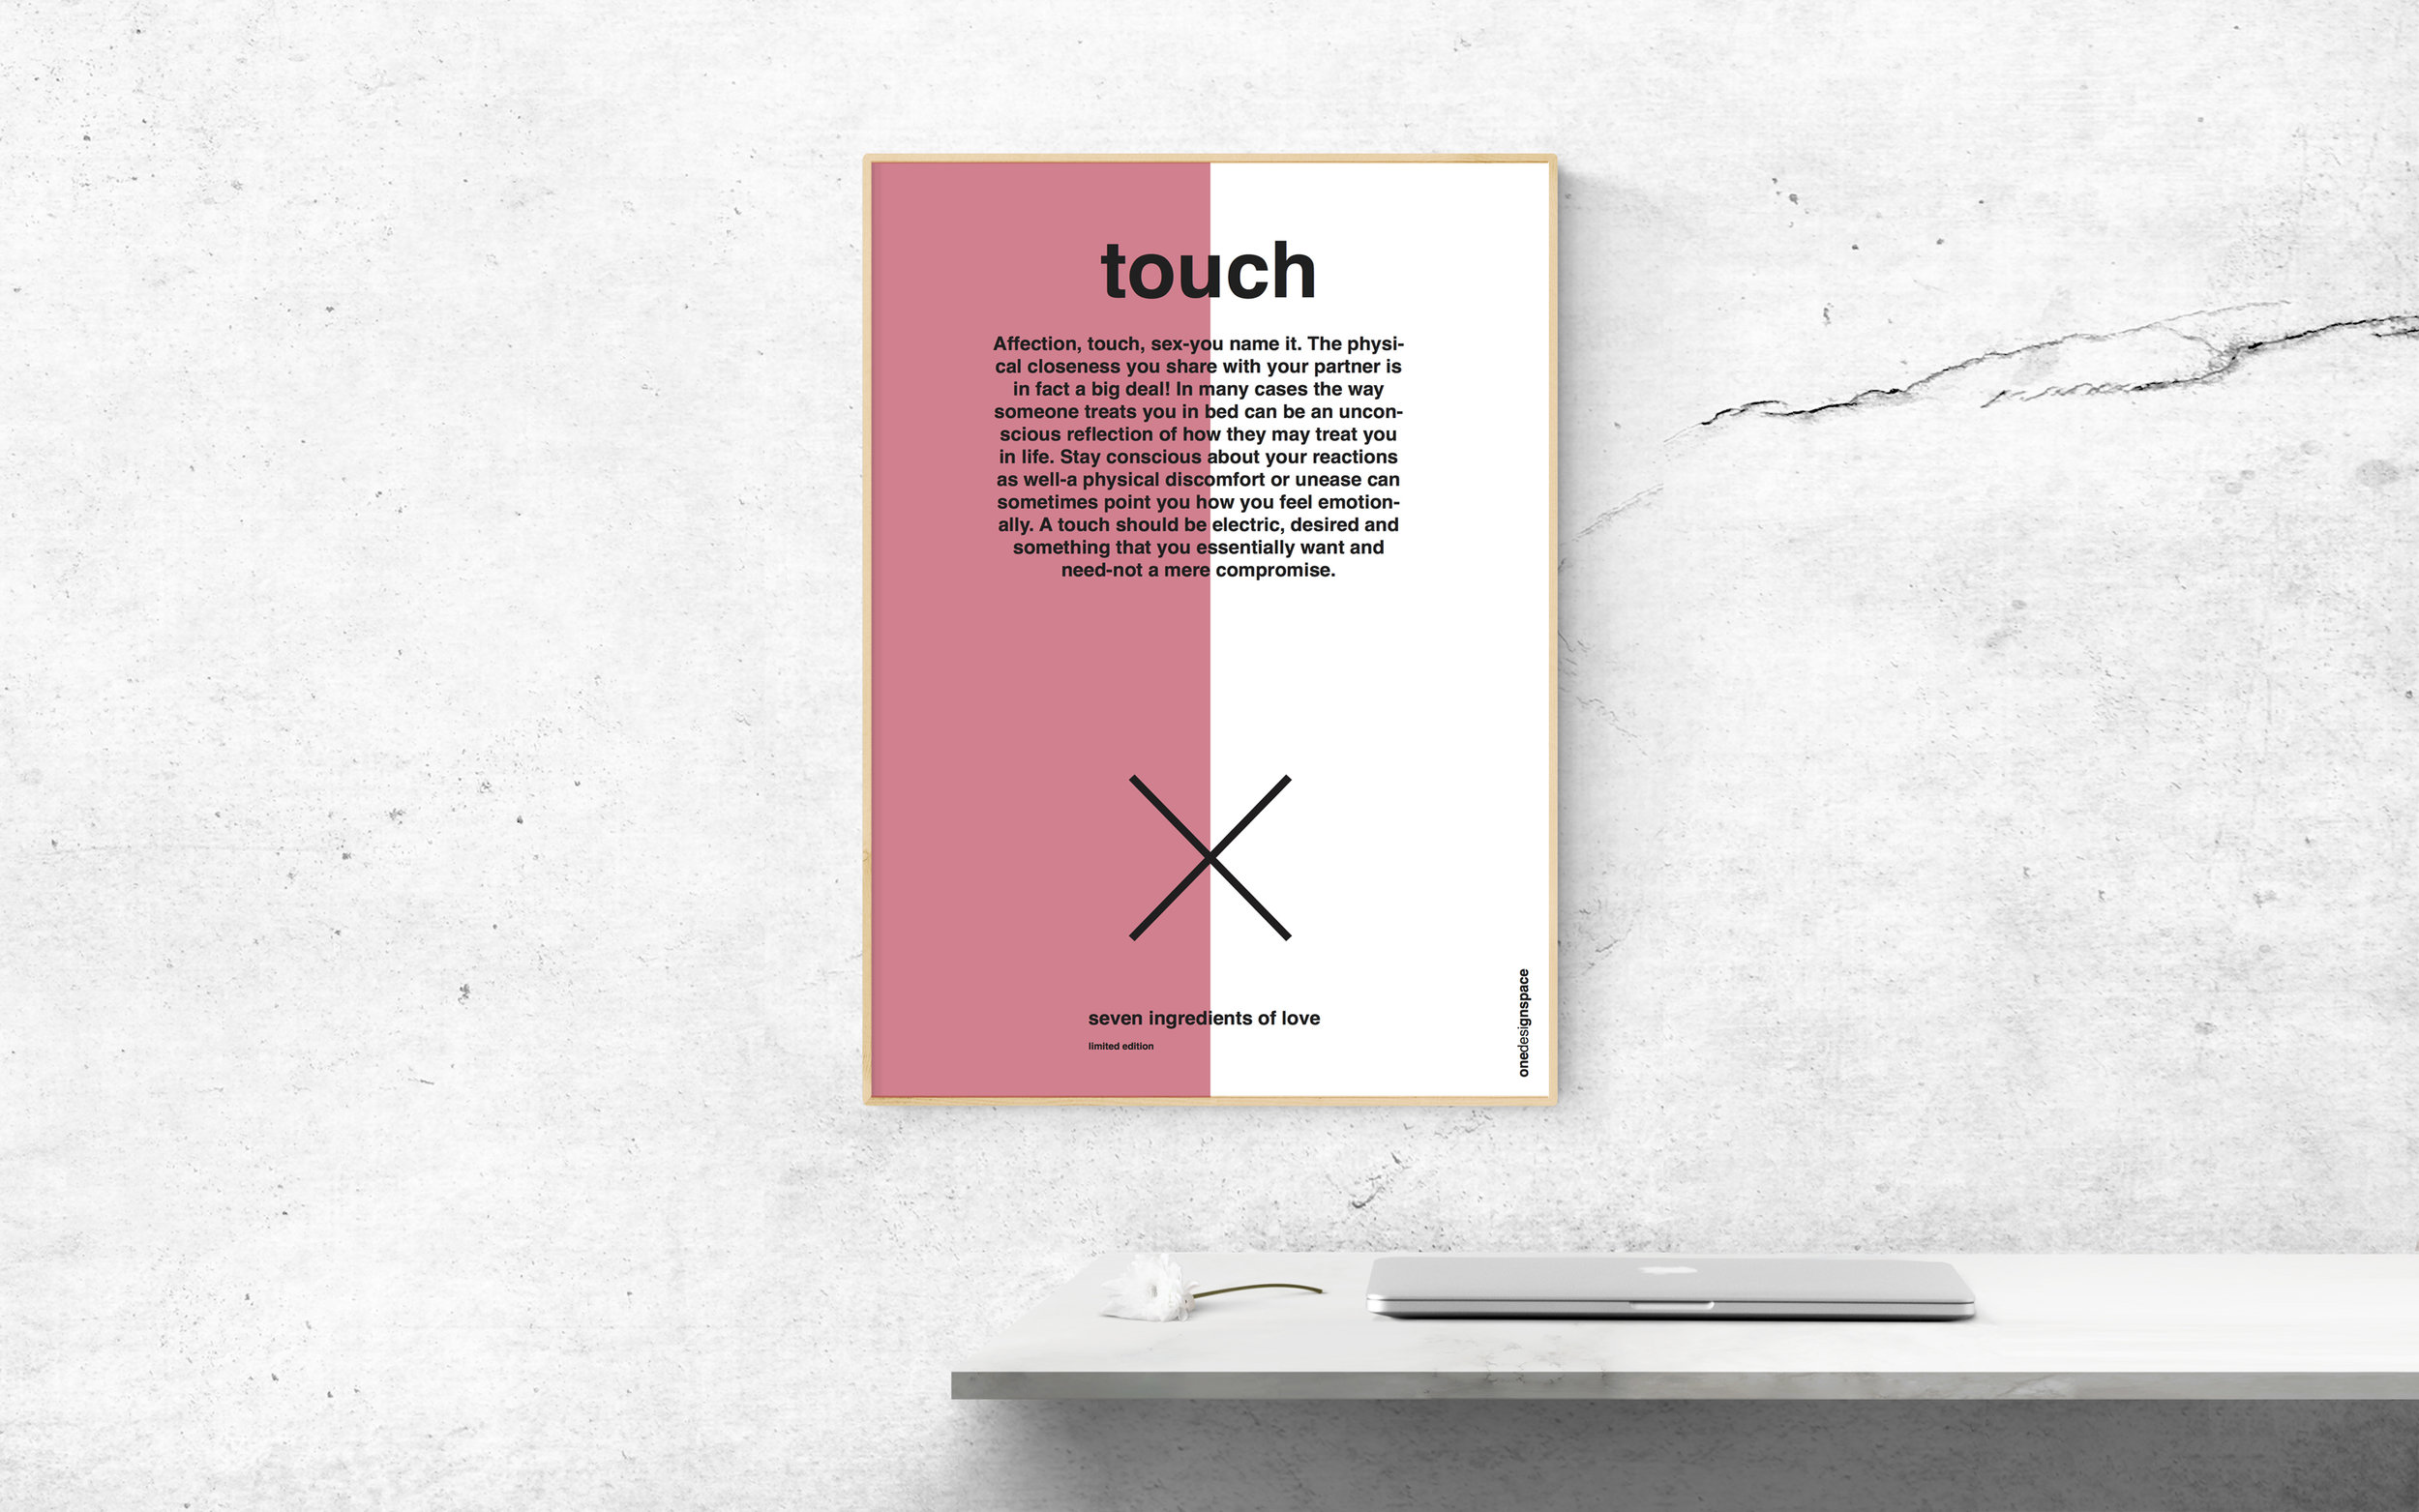 touch-render-new.jpg